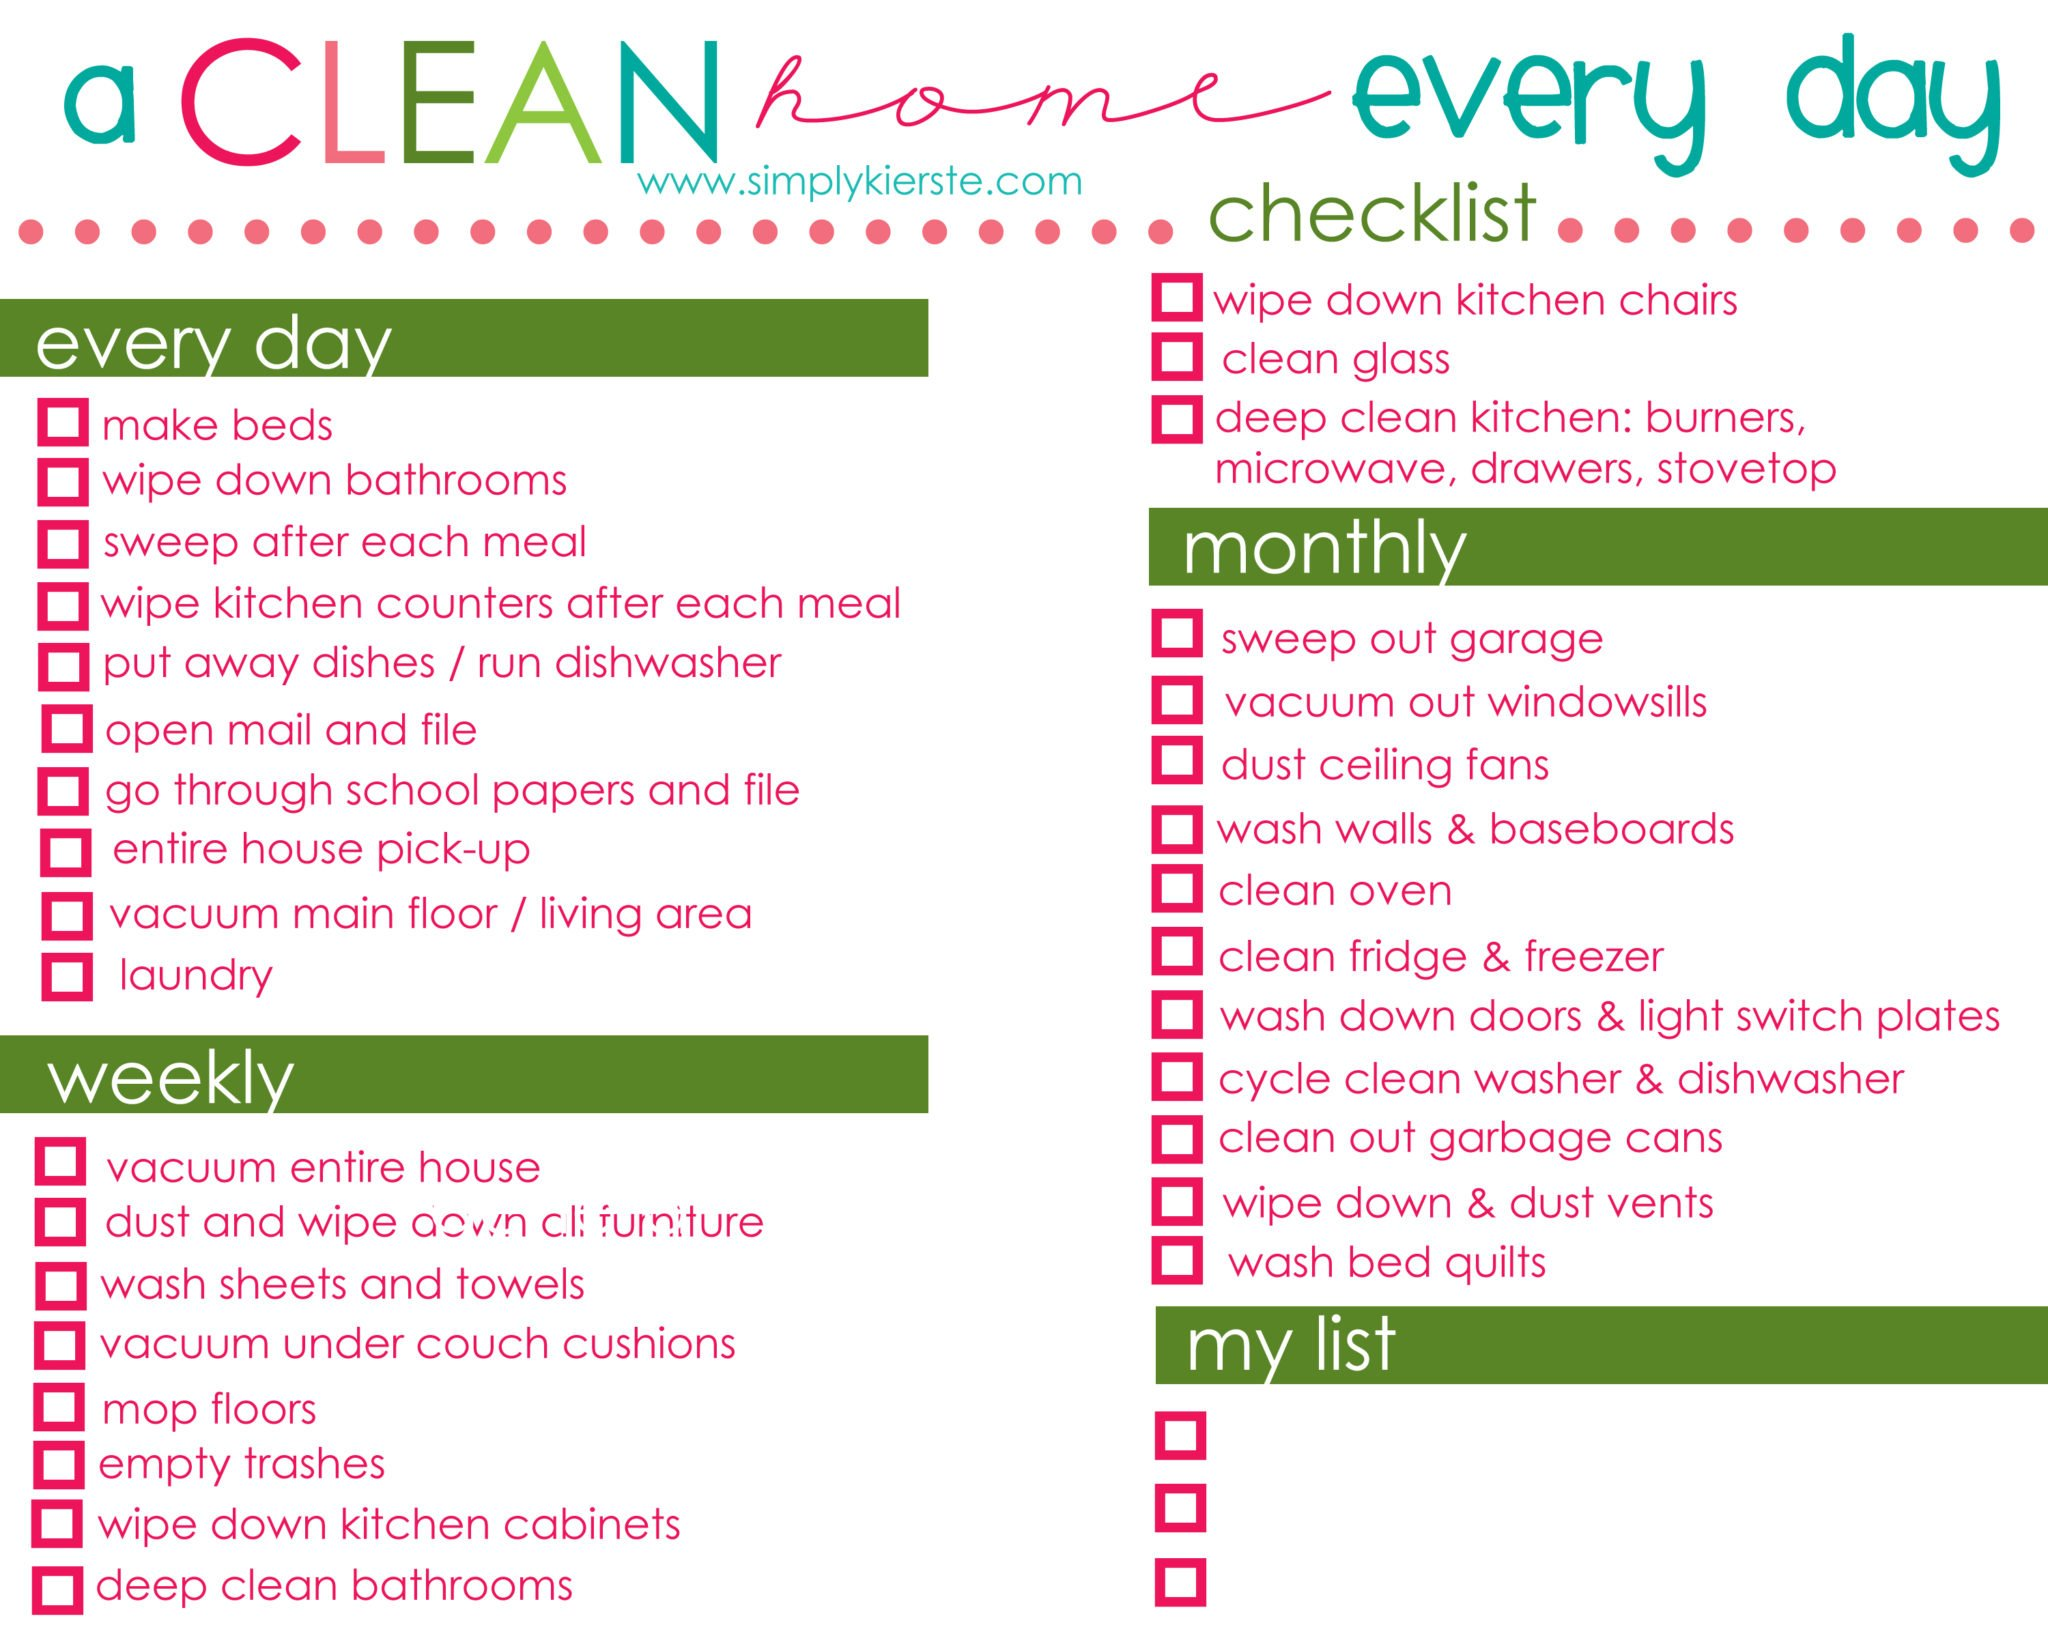 how to have a clean home every day | oldsaltfarm.com #cleaningtips #cleaningschedule #cleaningideas #cleaningmethod